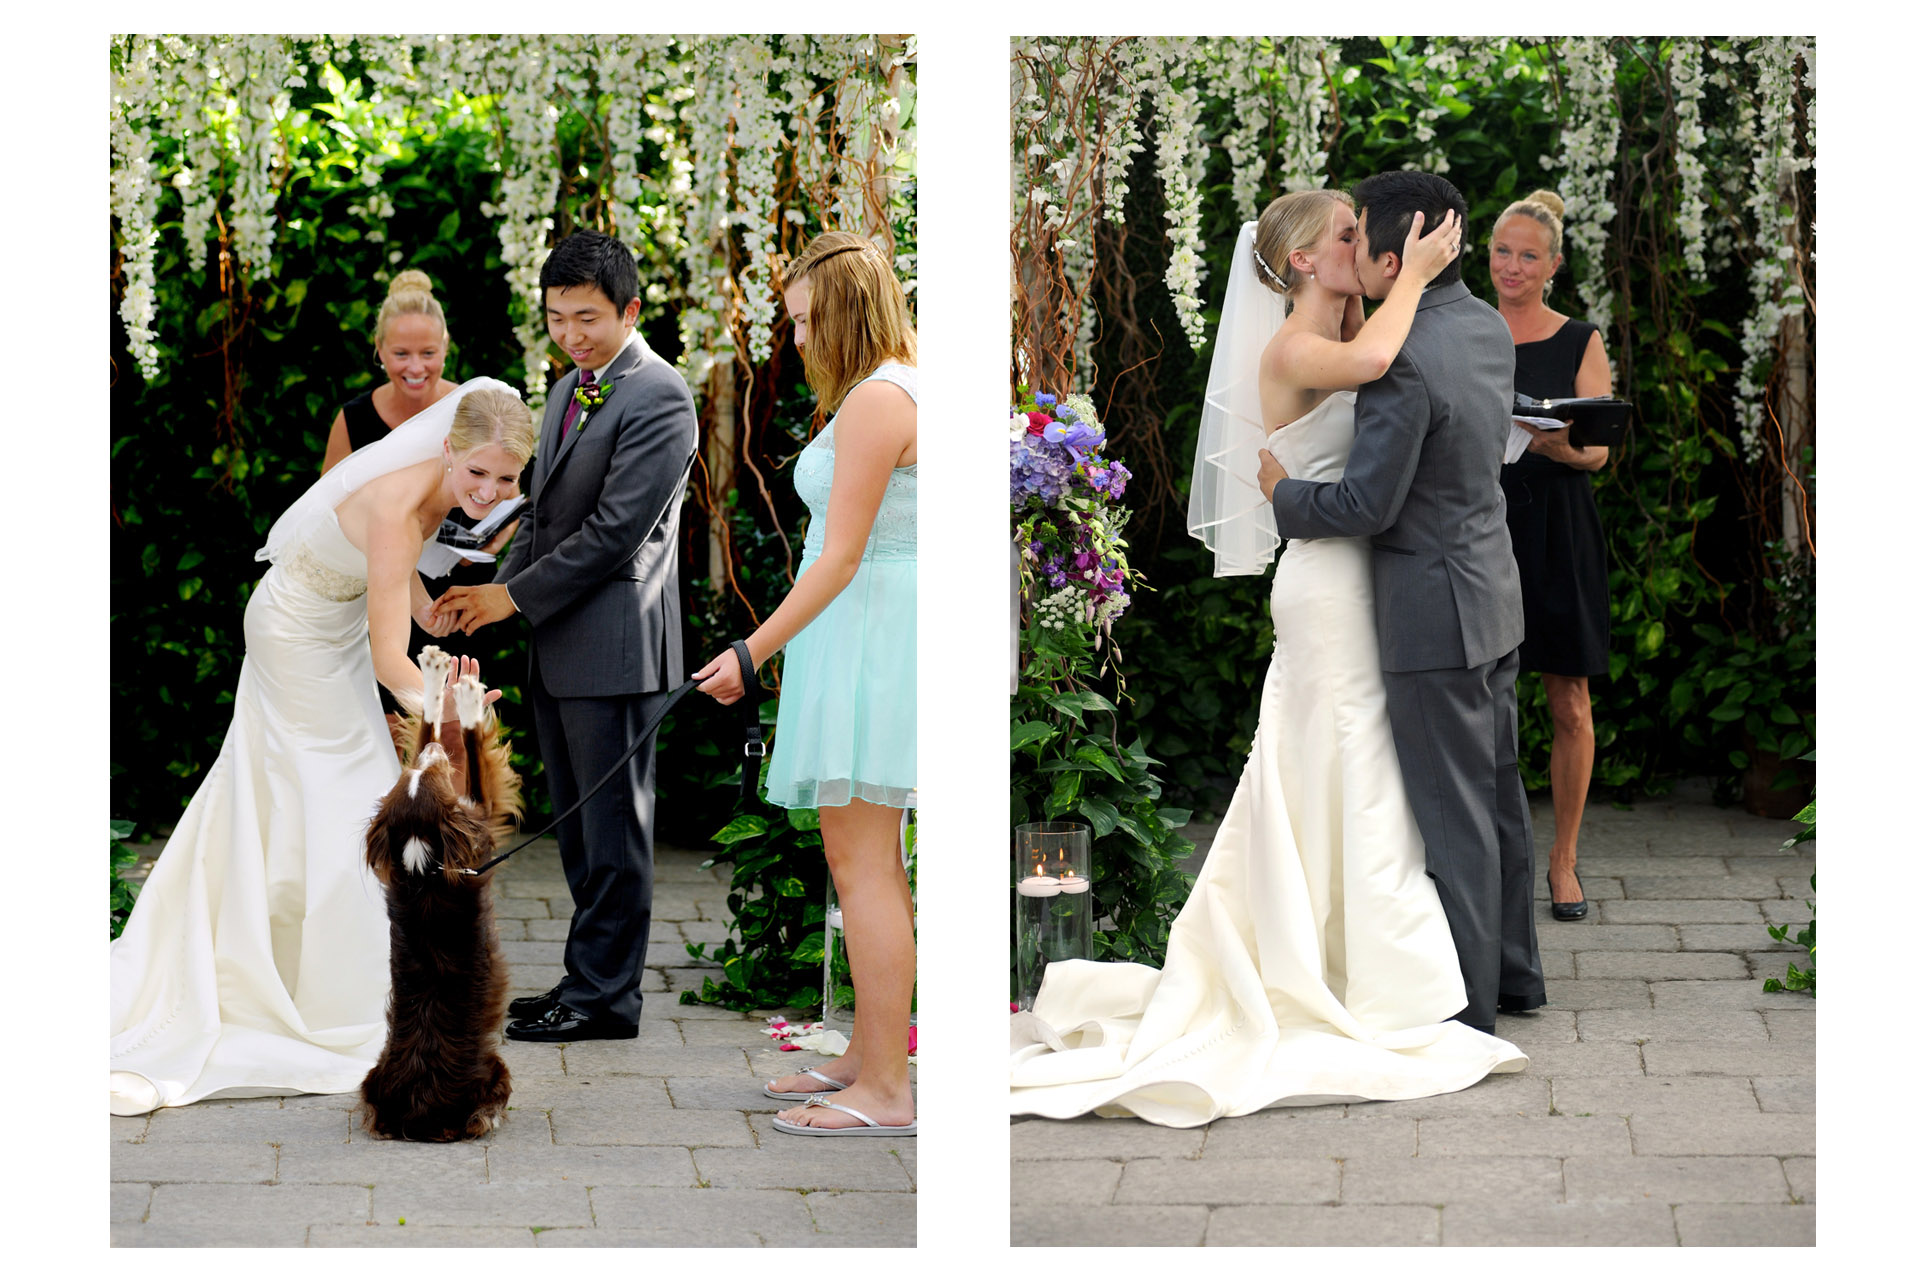 Planterra Conservatory wedding photographer's photo of Sarah high fives her dog during her wedding ceremony  at the Planterra Conservatory in West Bloomfield, Michigan.